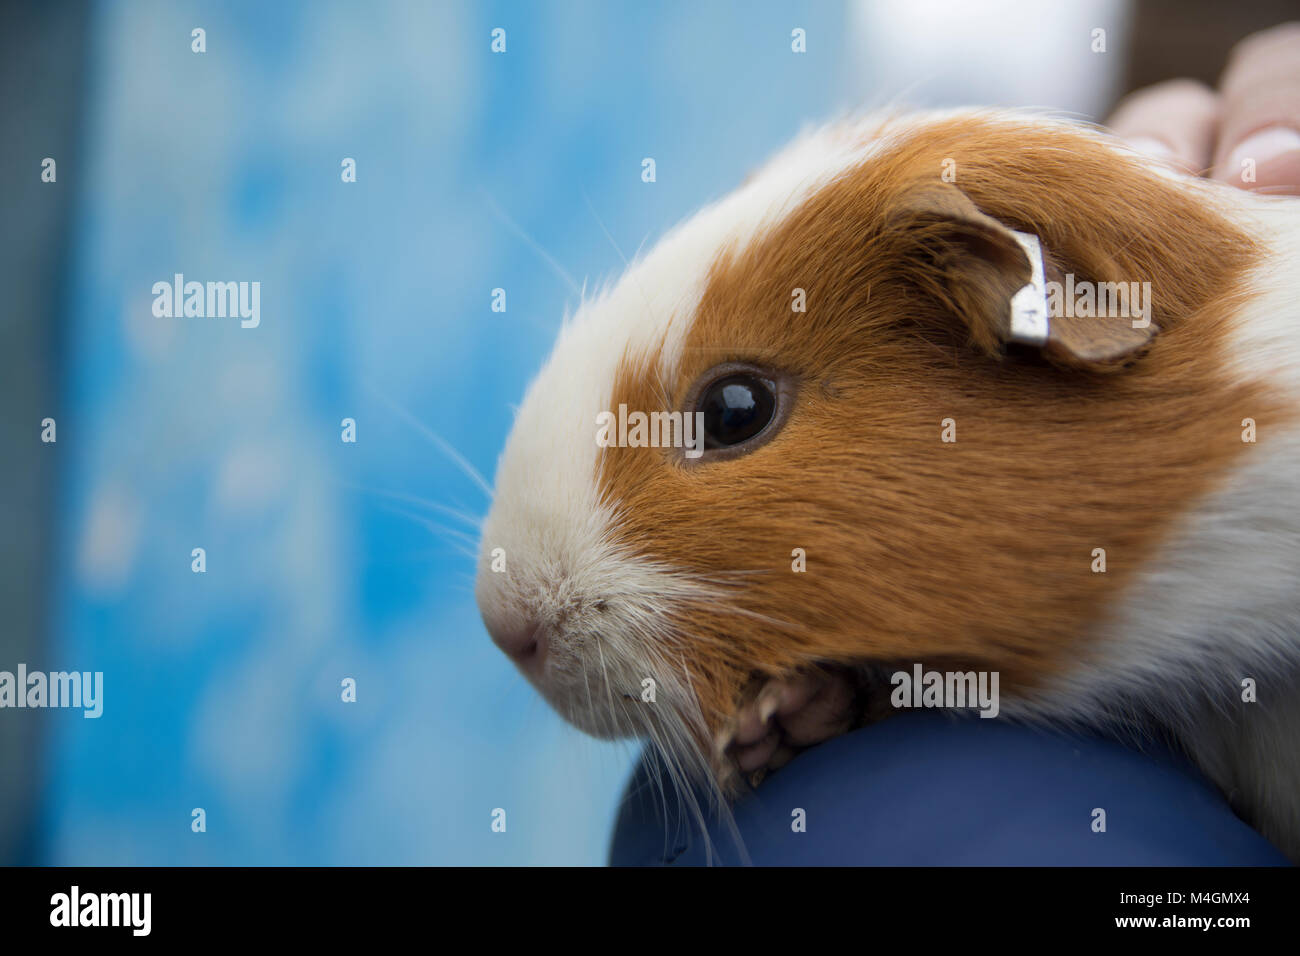 cui rodent from bolivia stock photo 174929948 alamy